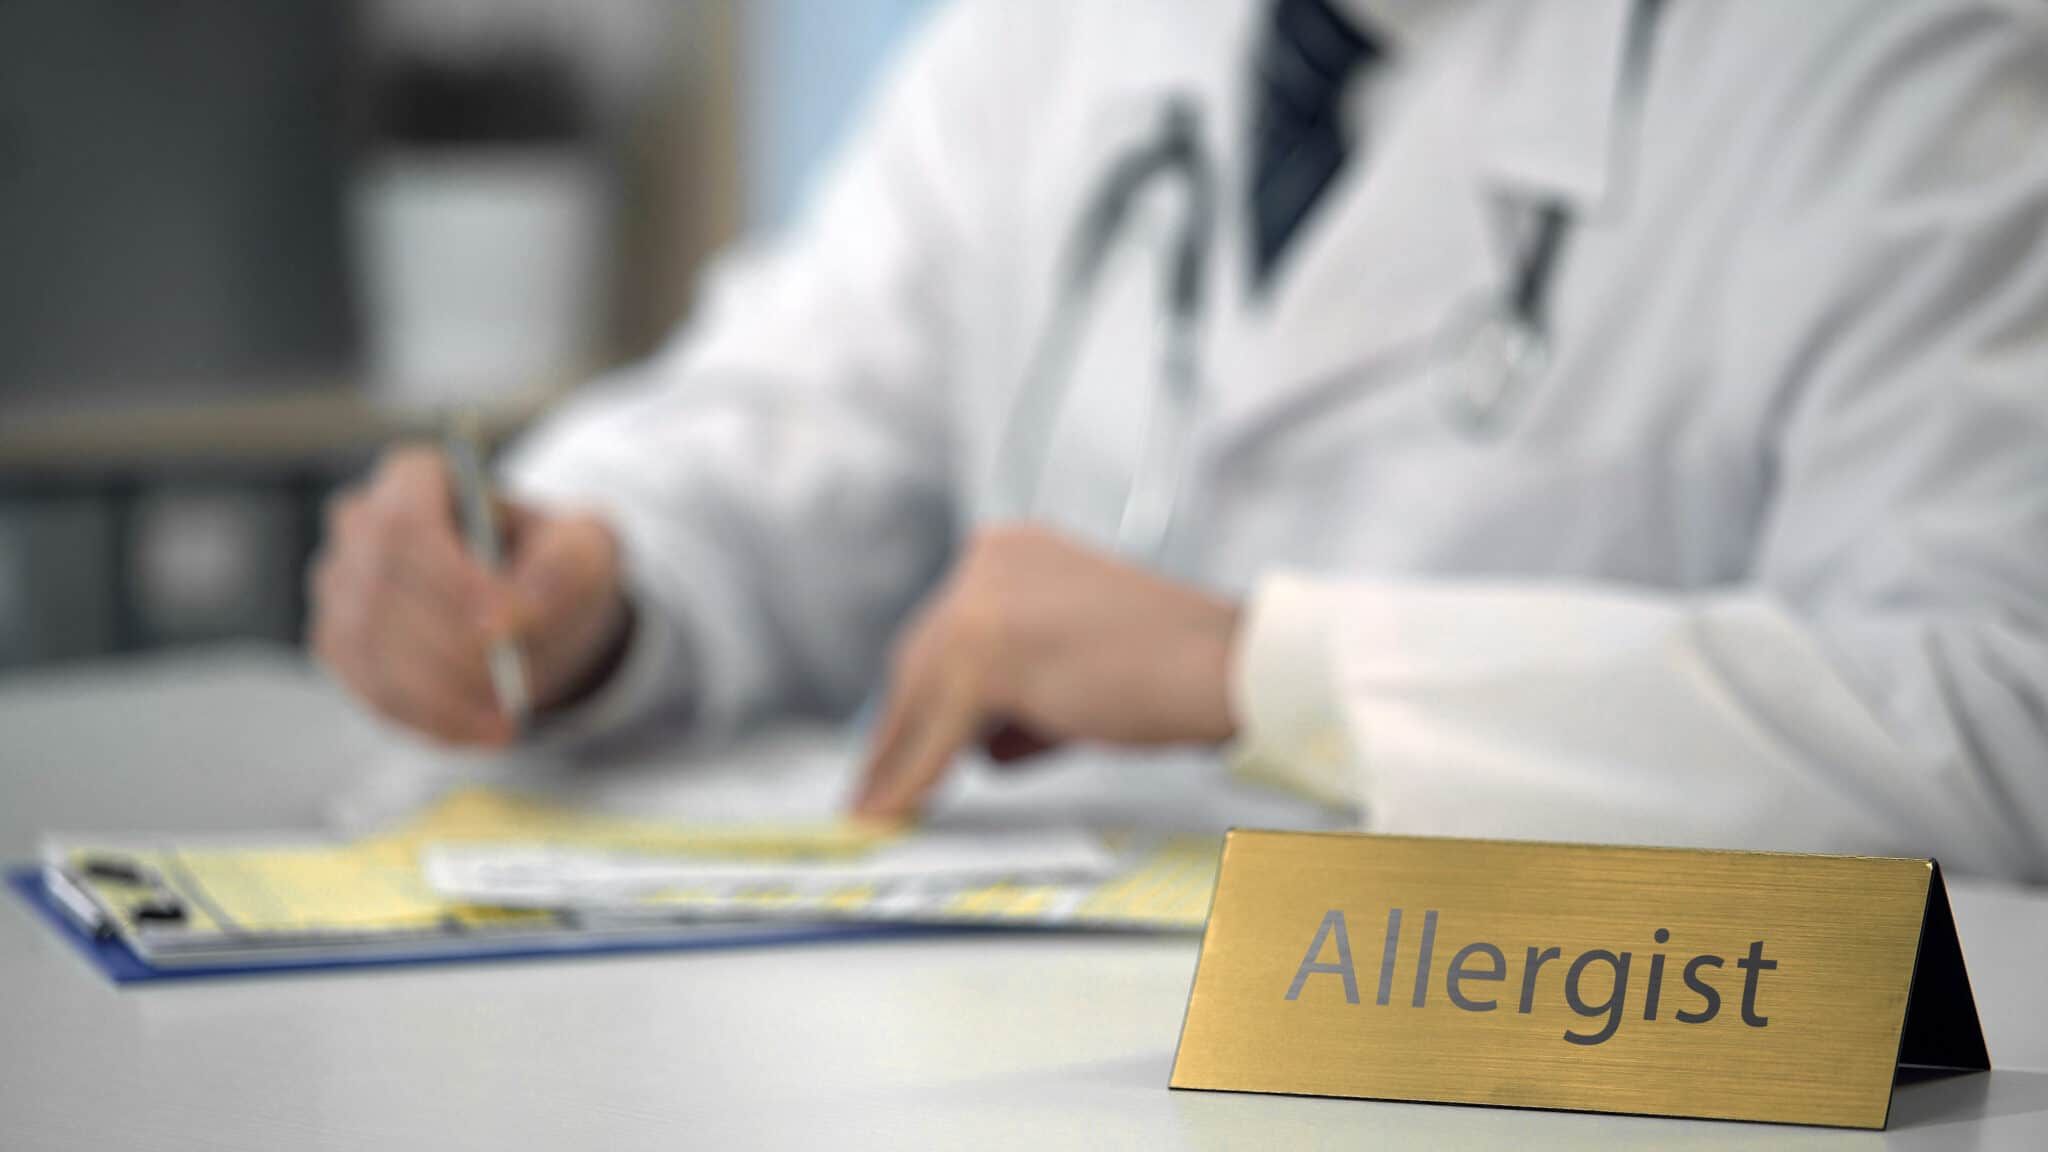 What is an Allergist?